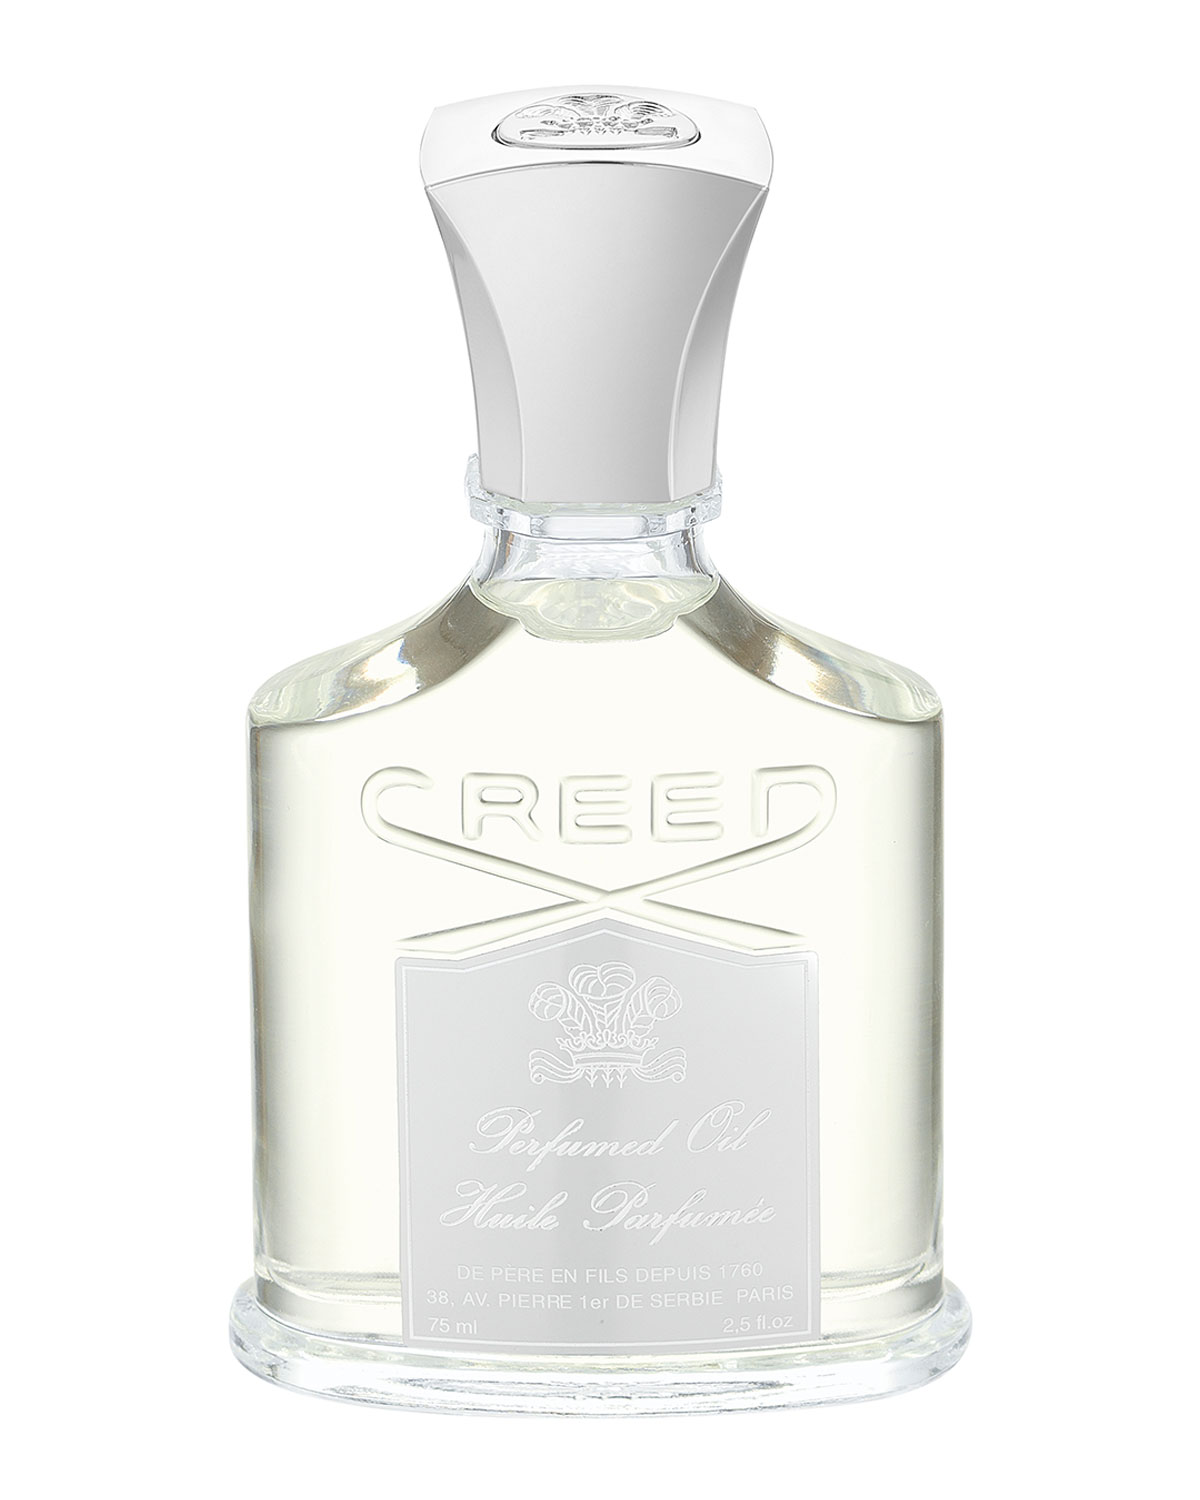 Creed Spring Flower Perfumed Oil 25 Oz 75 Ml Neiman Marcus